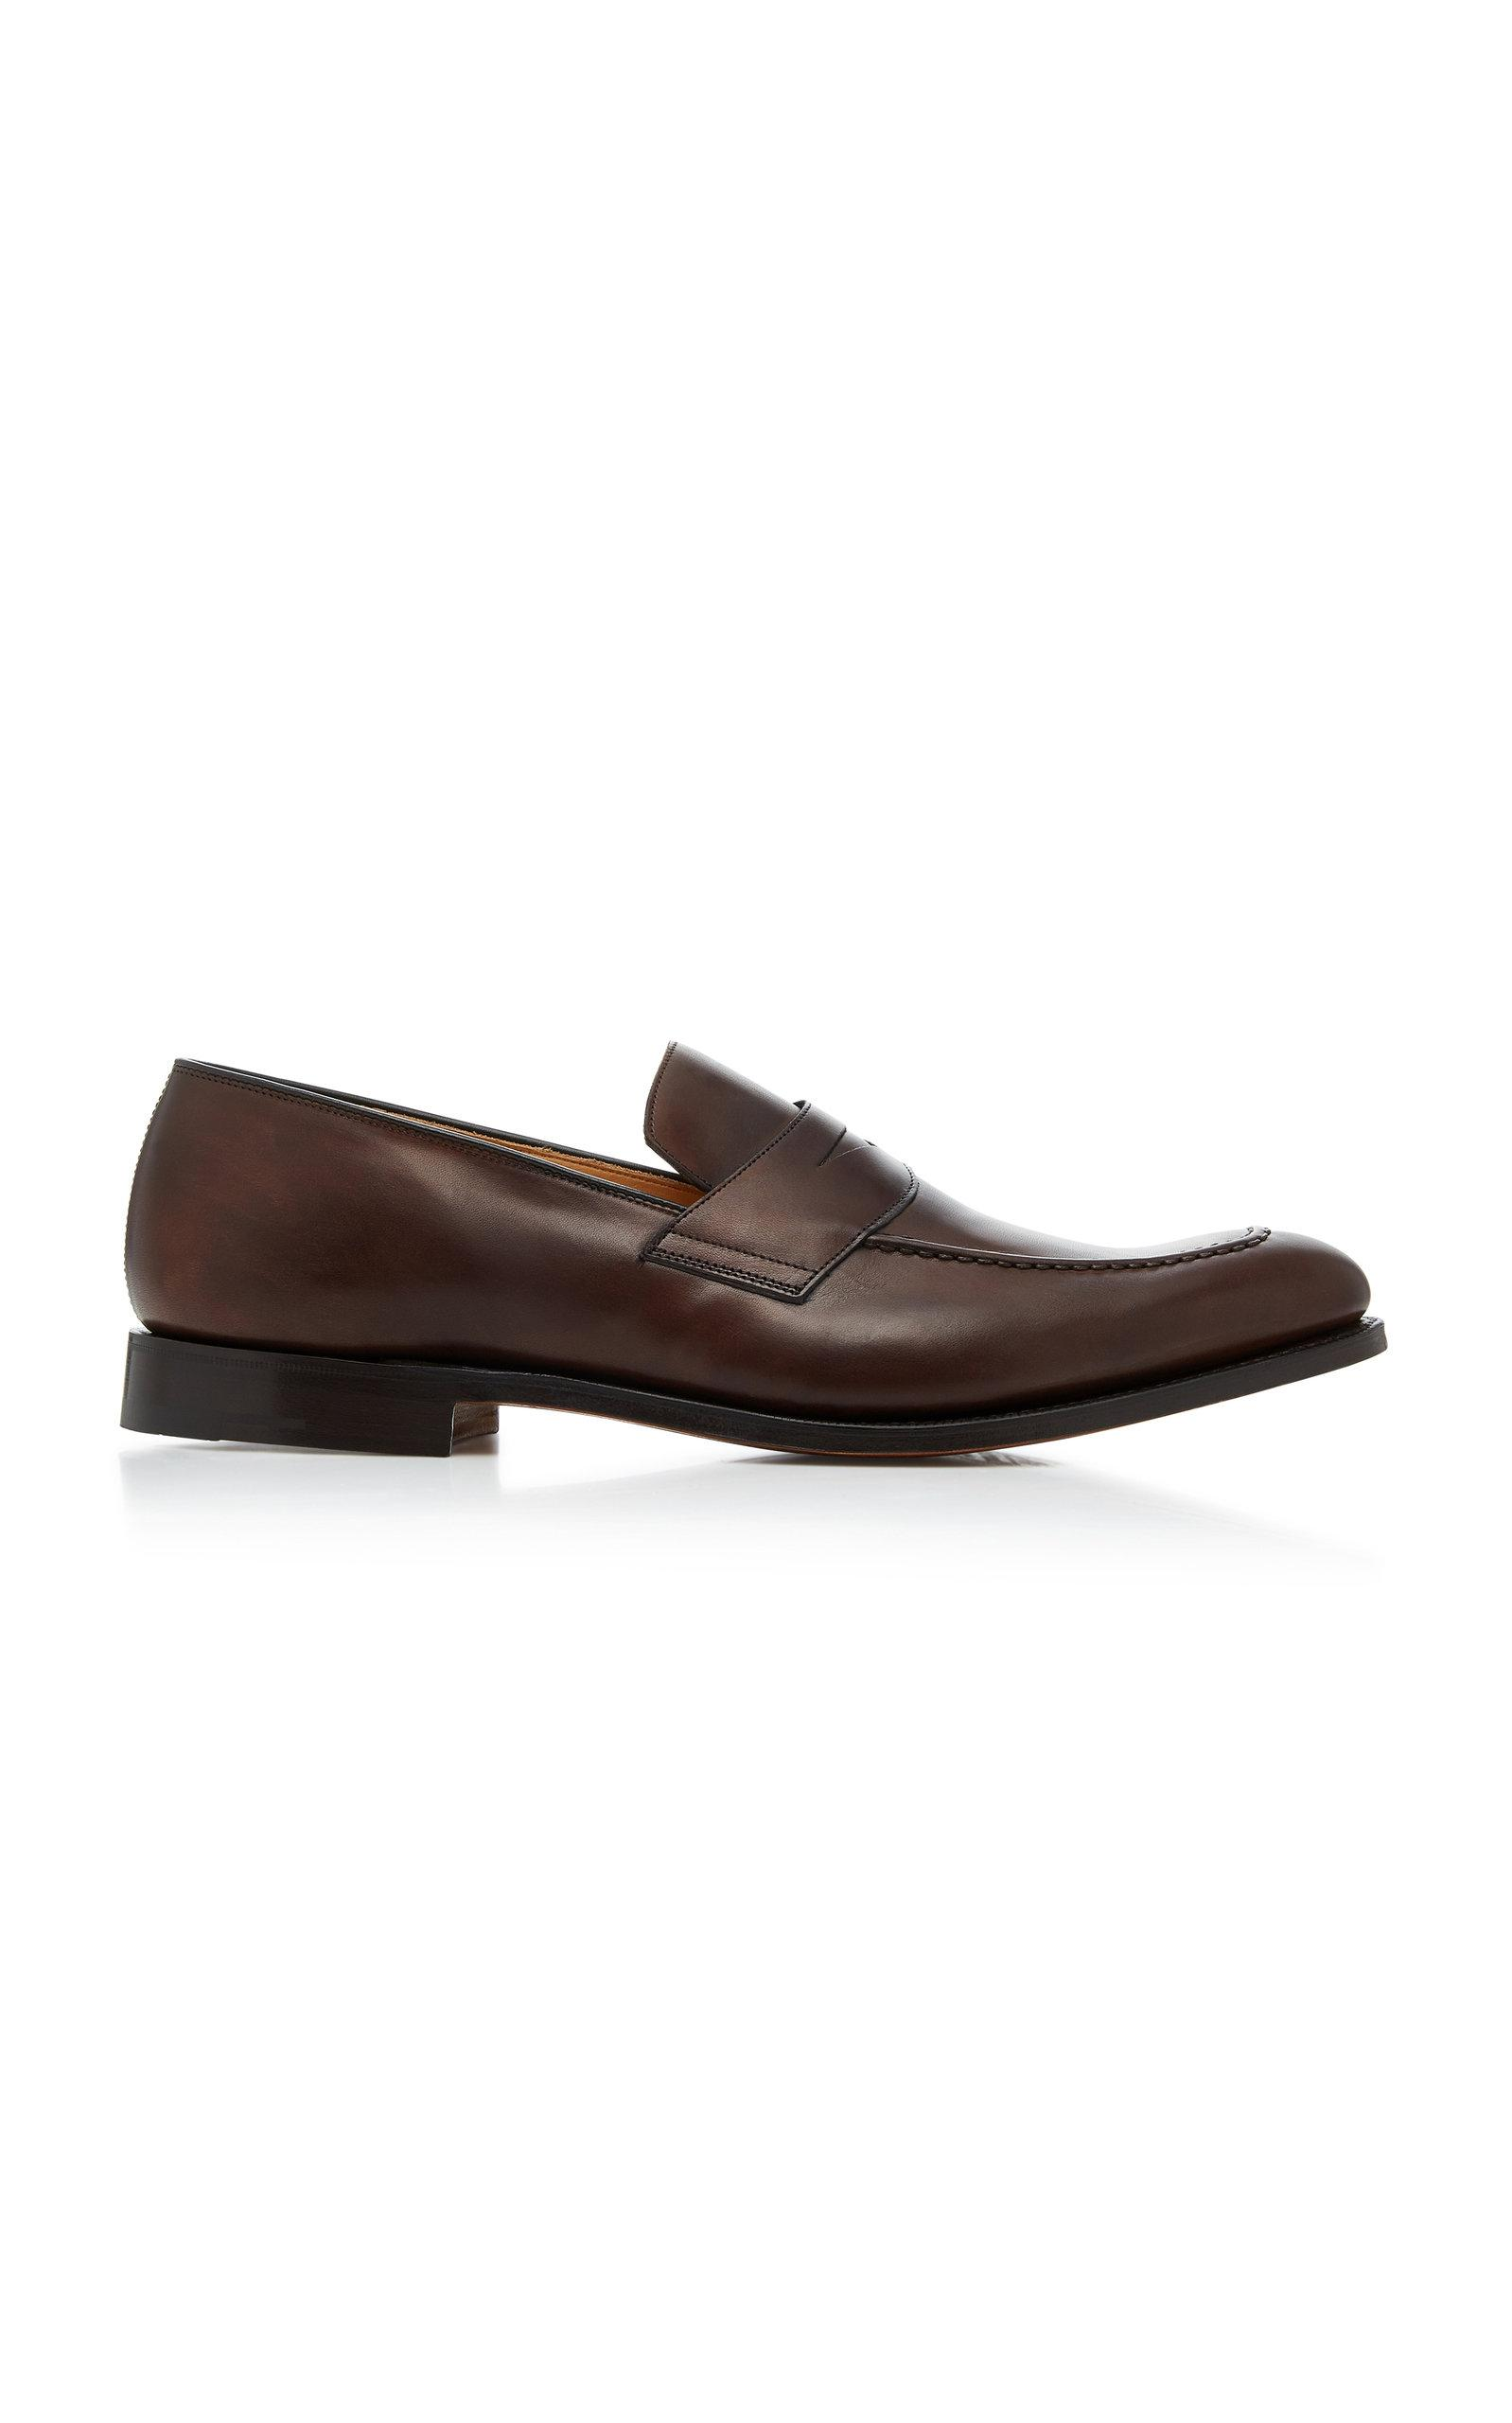 Church's Hertford Leather Penny Loafers In Brown